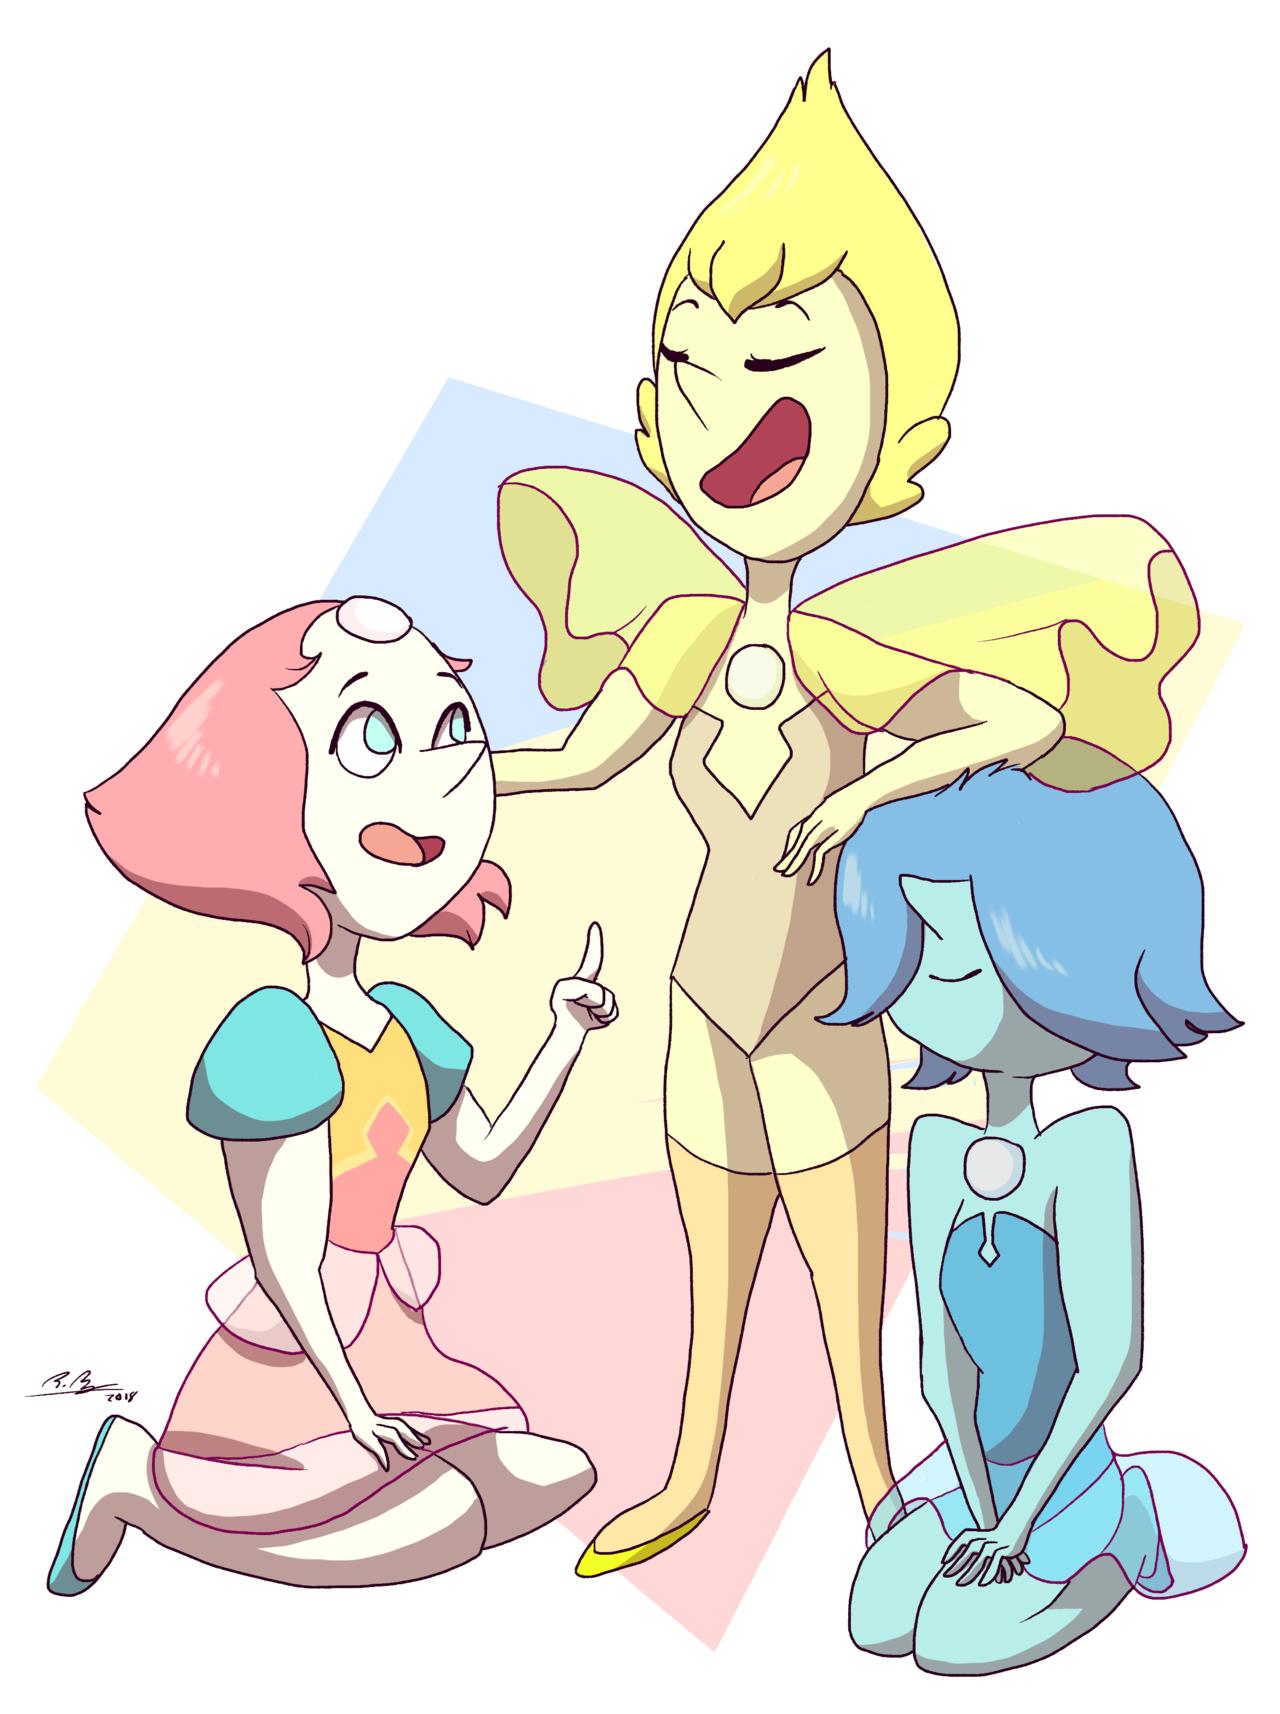 listen to me the diamonds' pearls were friends and you can't convince me otherwise